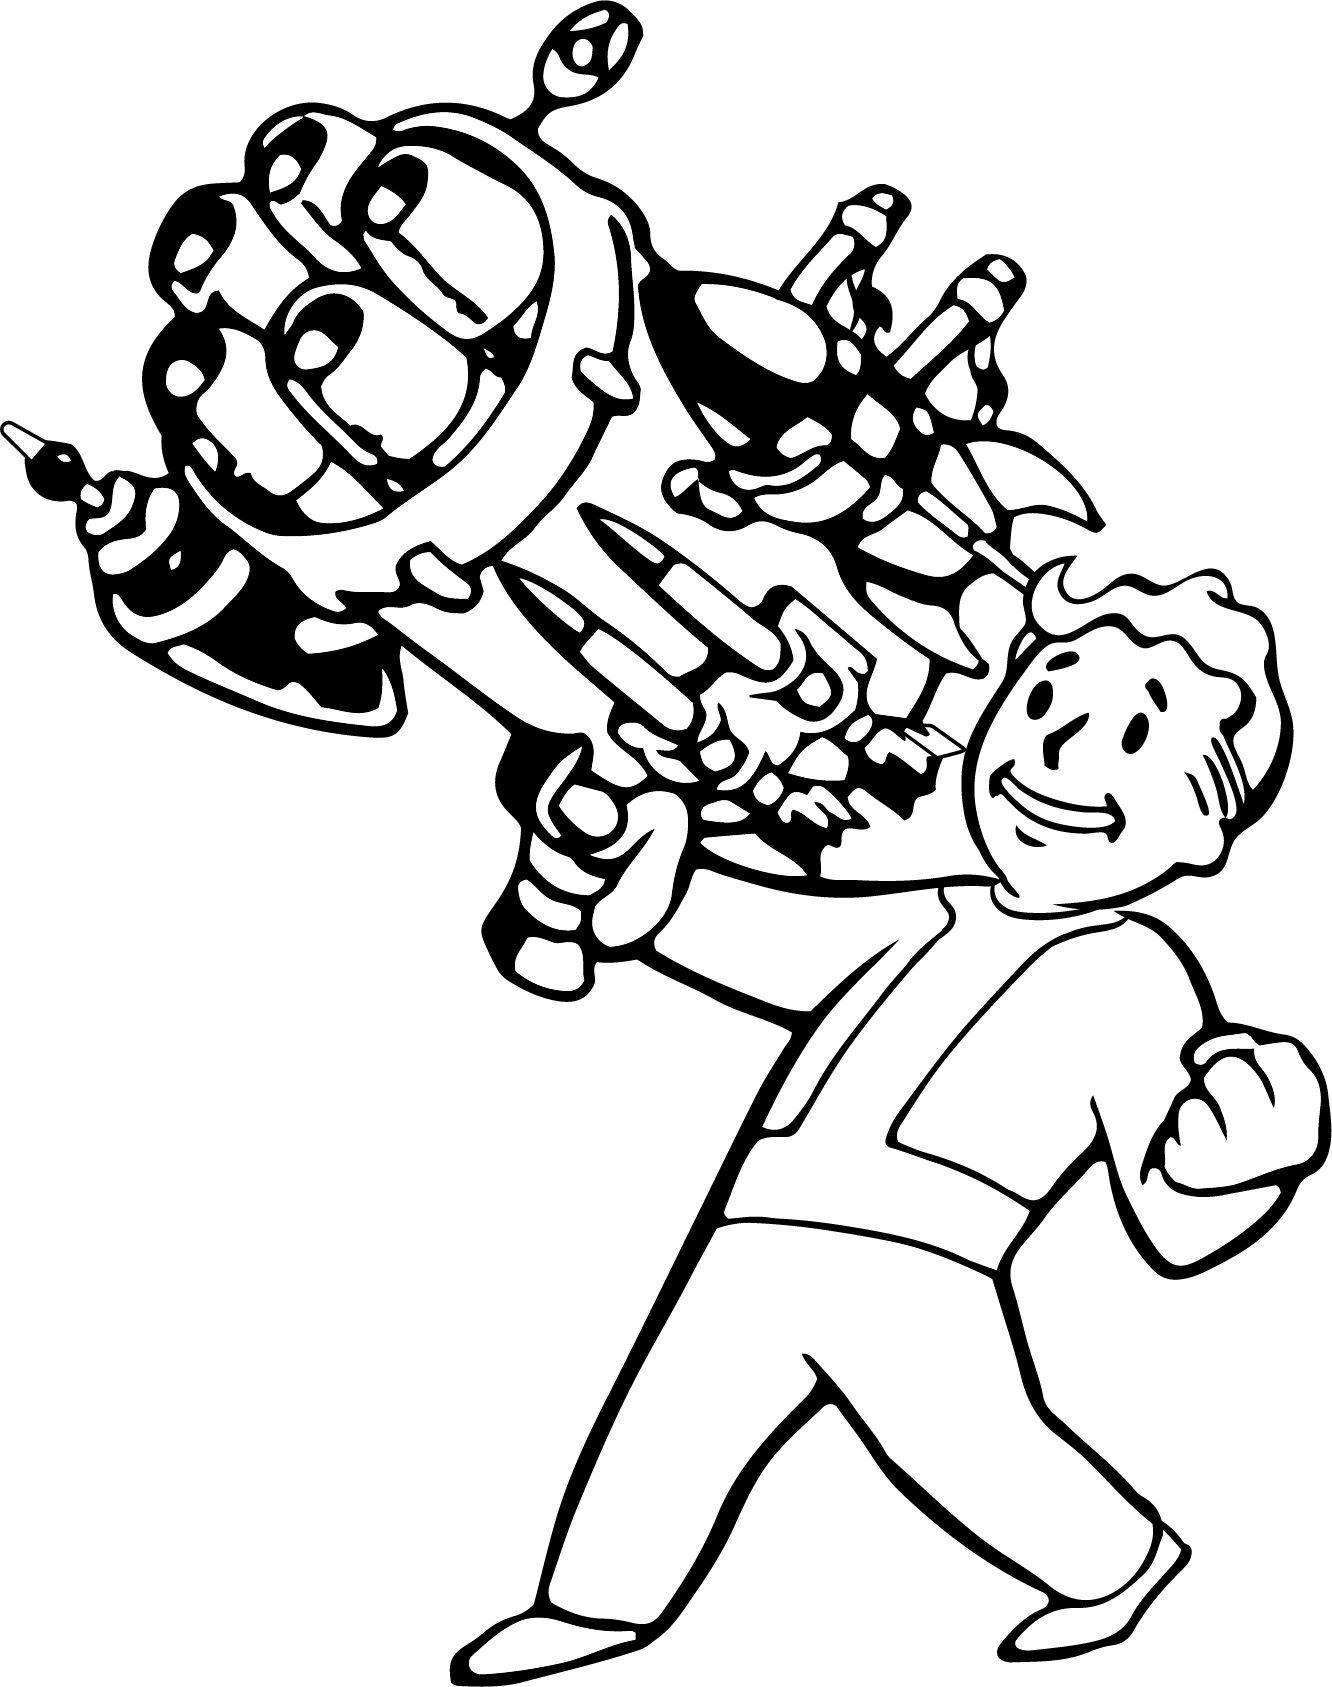 File:Weapon Handling.png